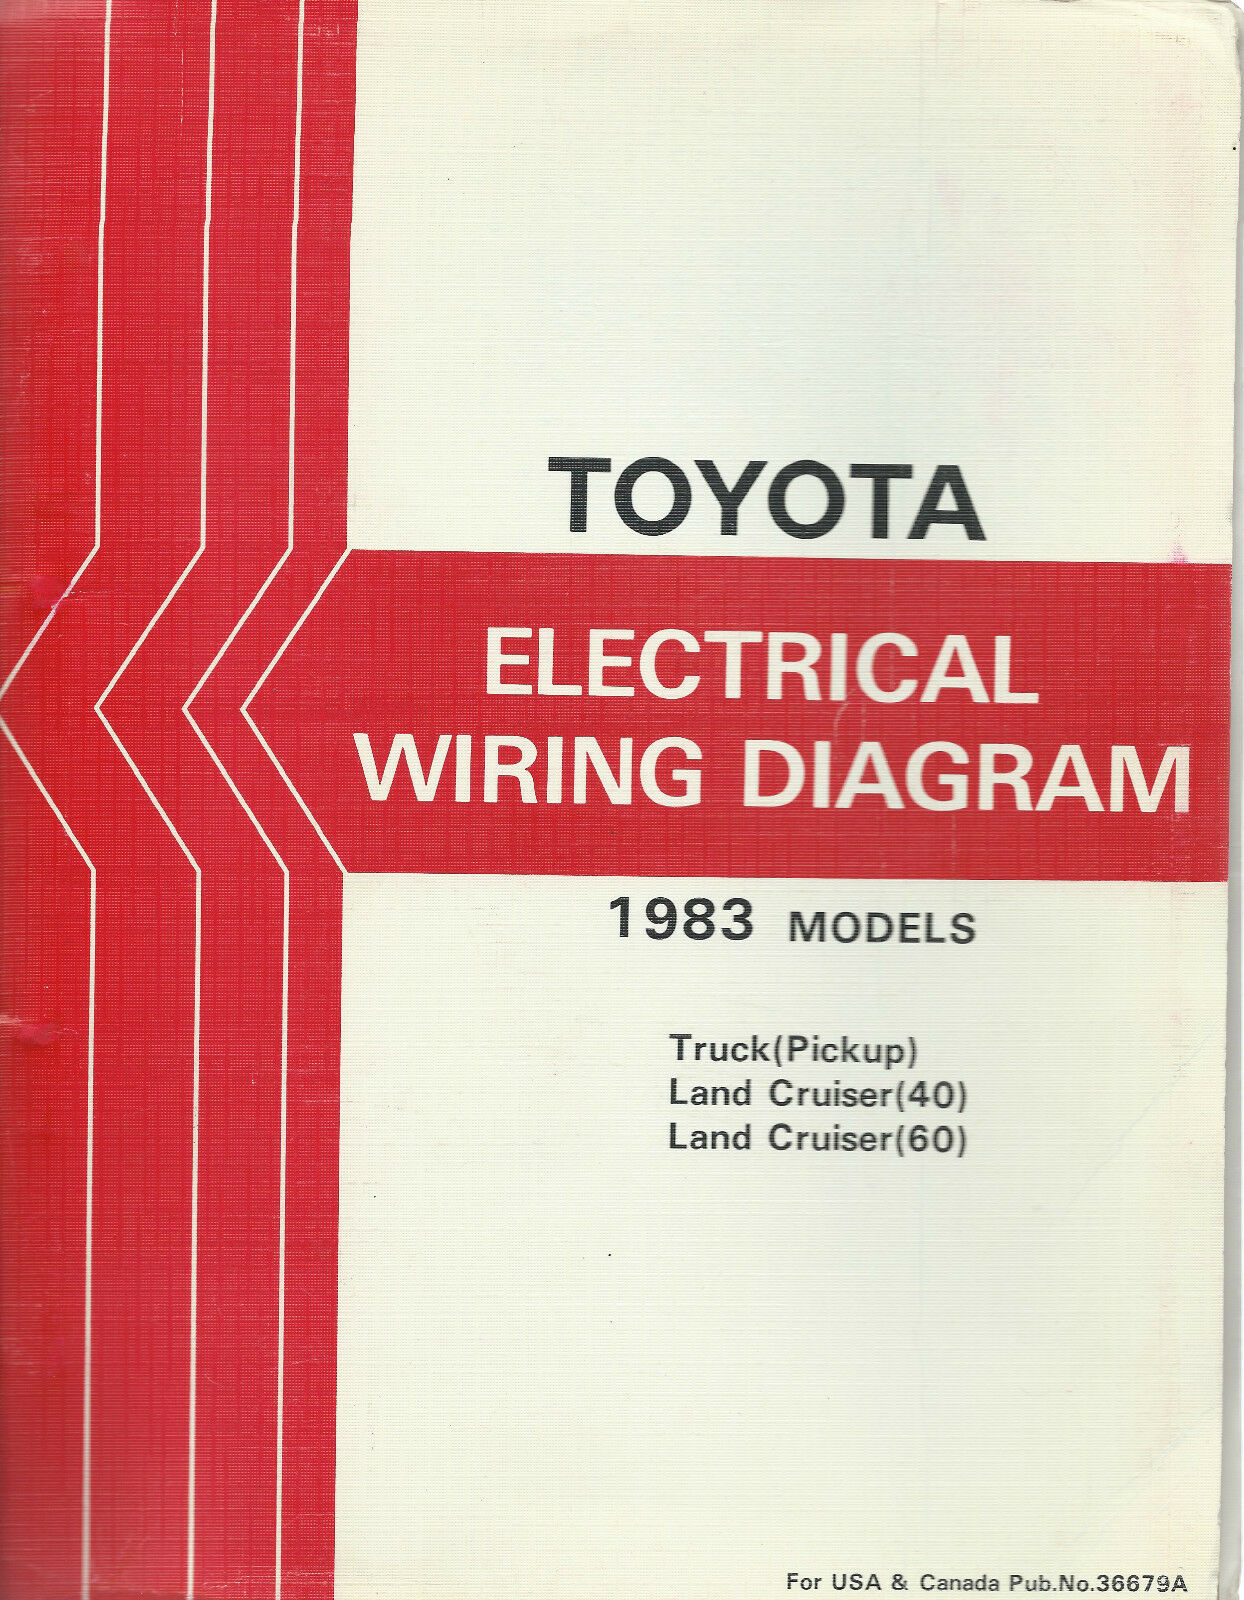 1983 Toyota Land Cruiser Fj Bj 40 Series Electrical Wiring Diagram 1 Of 10only 4 Available Repair Manual